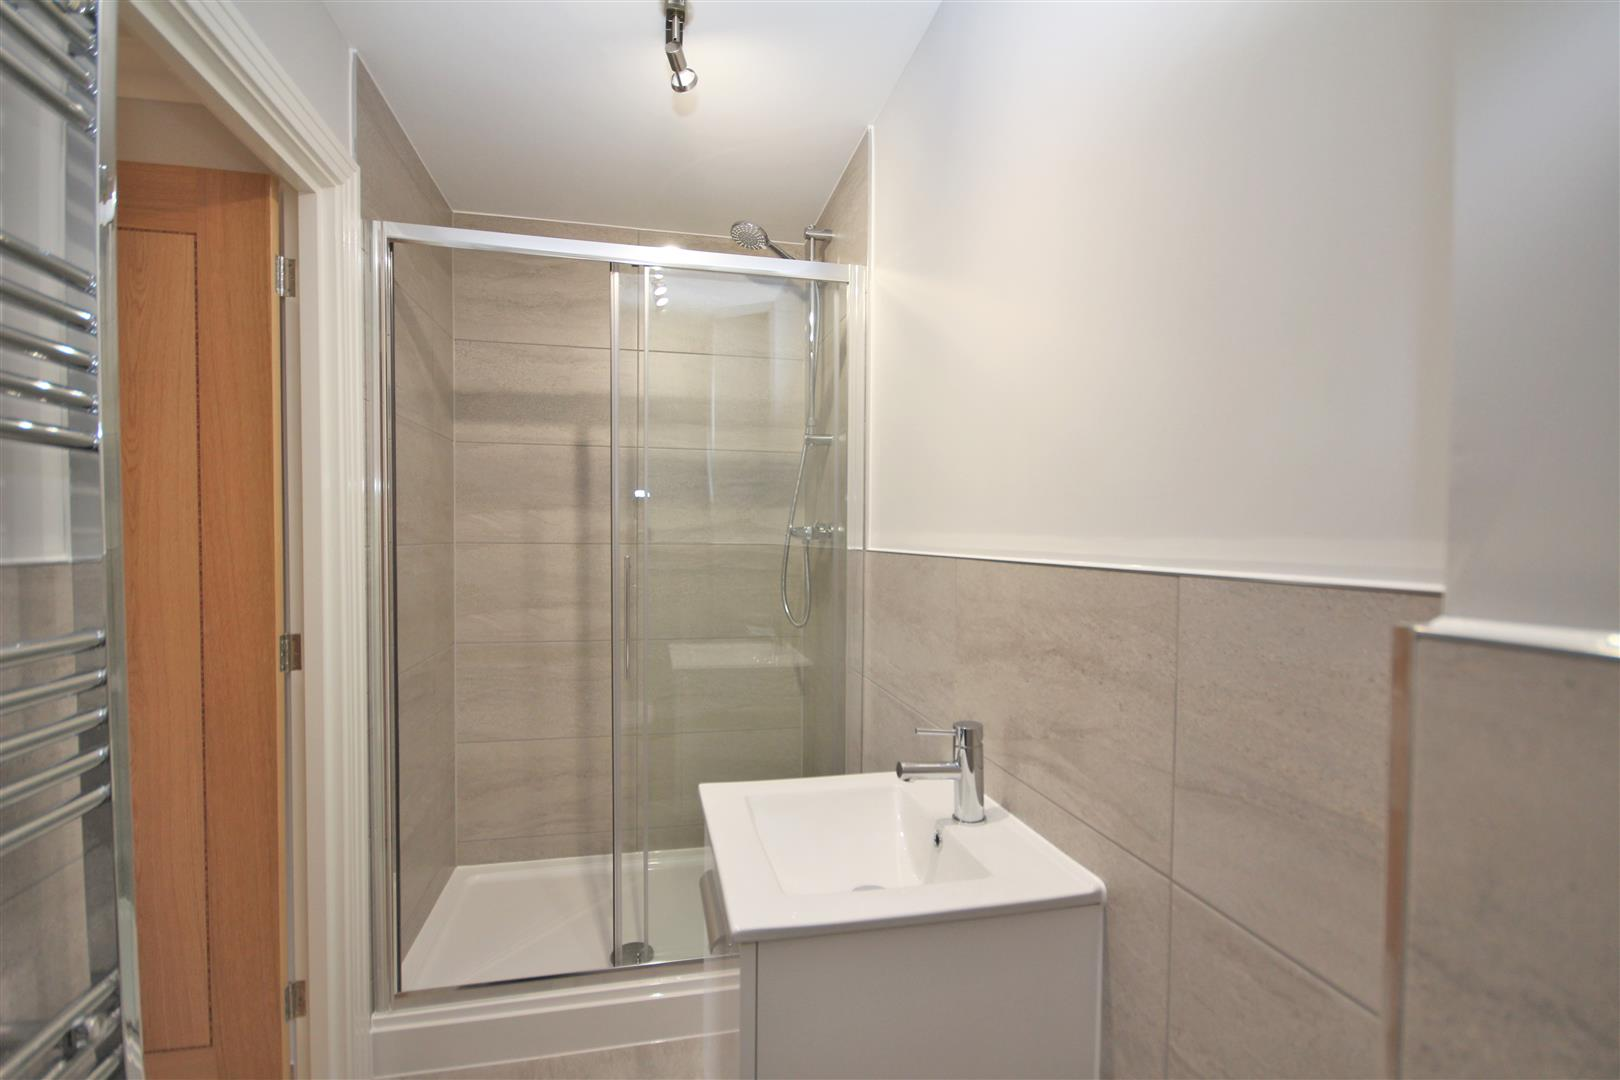 2 bed Flat to rent - (Property Image 9)